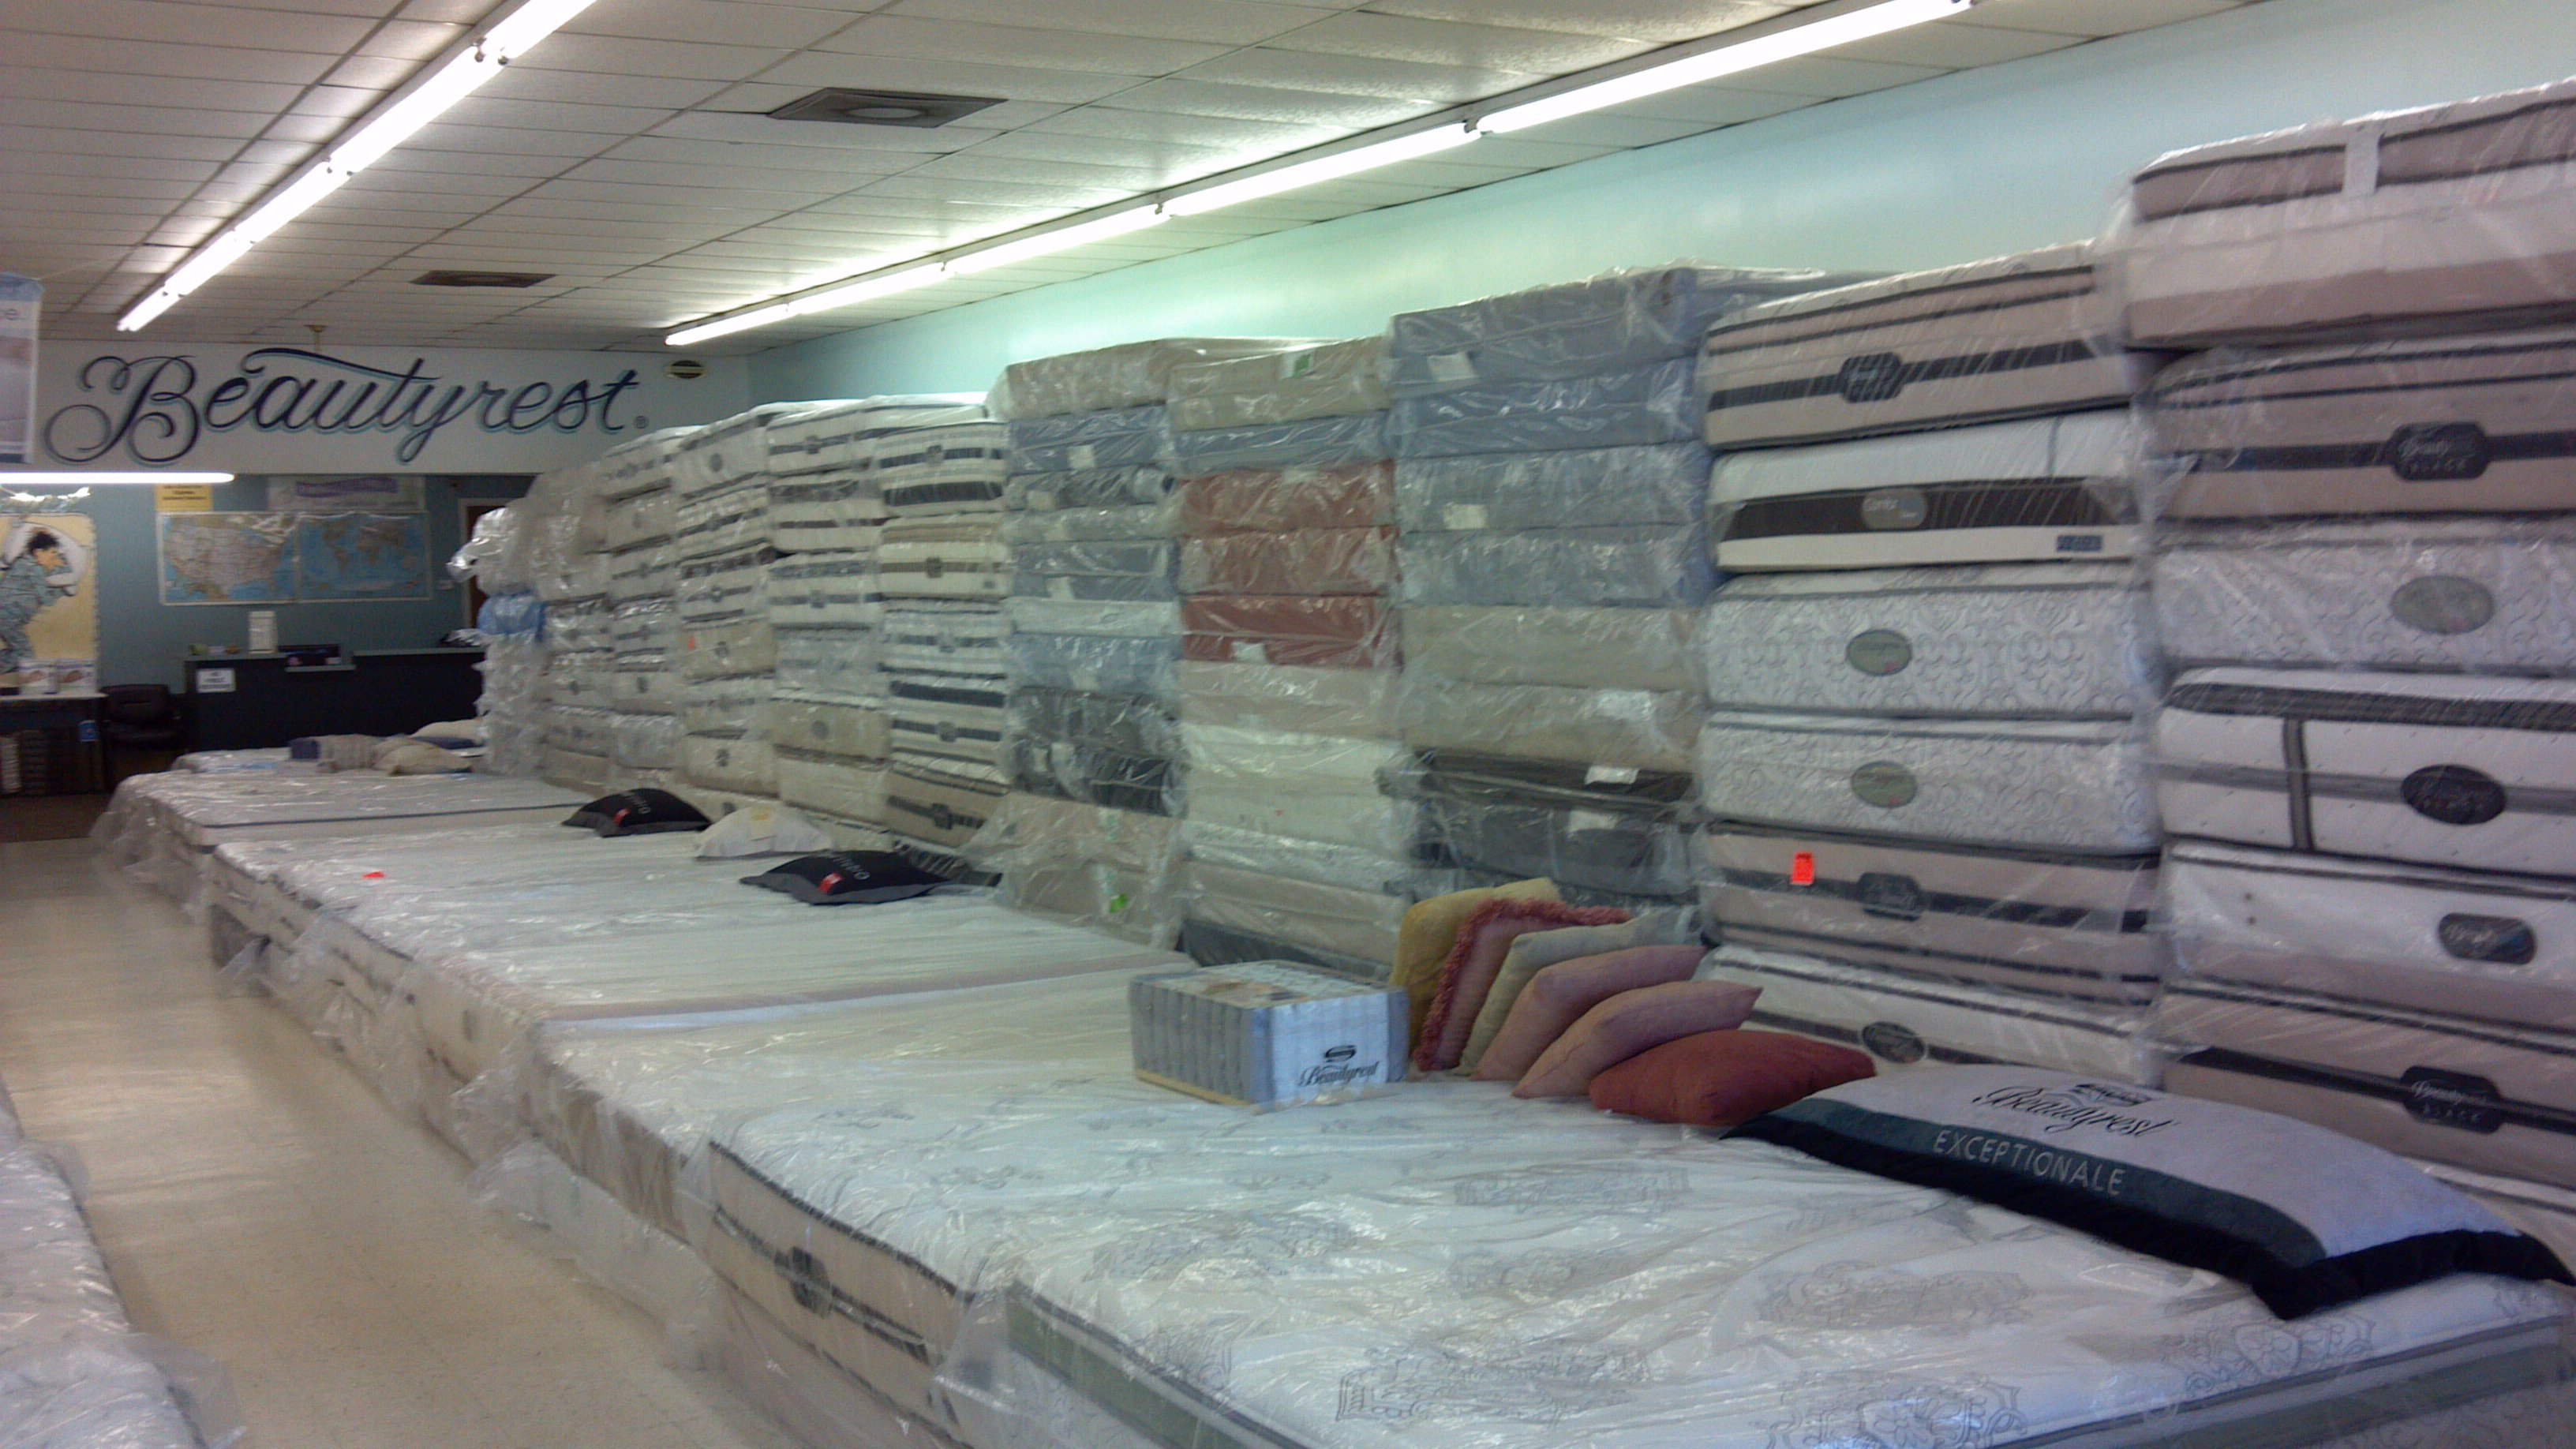 Mattress Outlet Jacksonville, FL